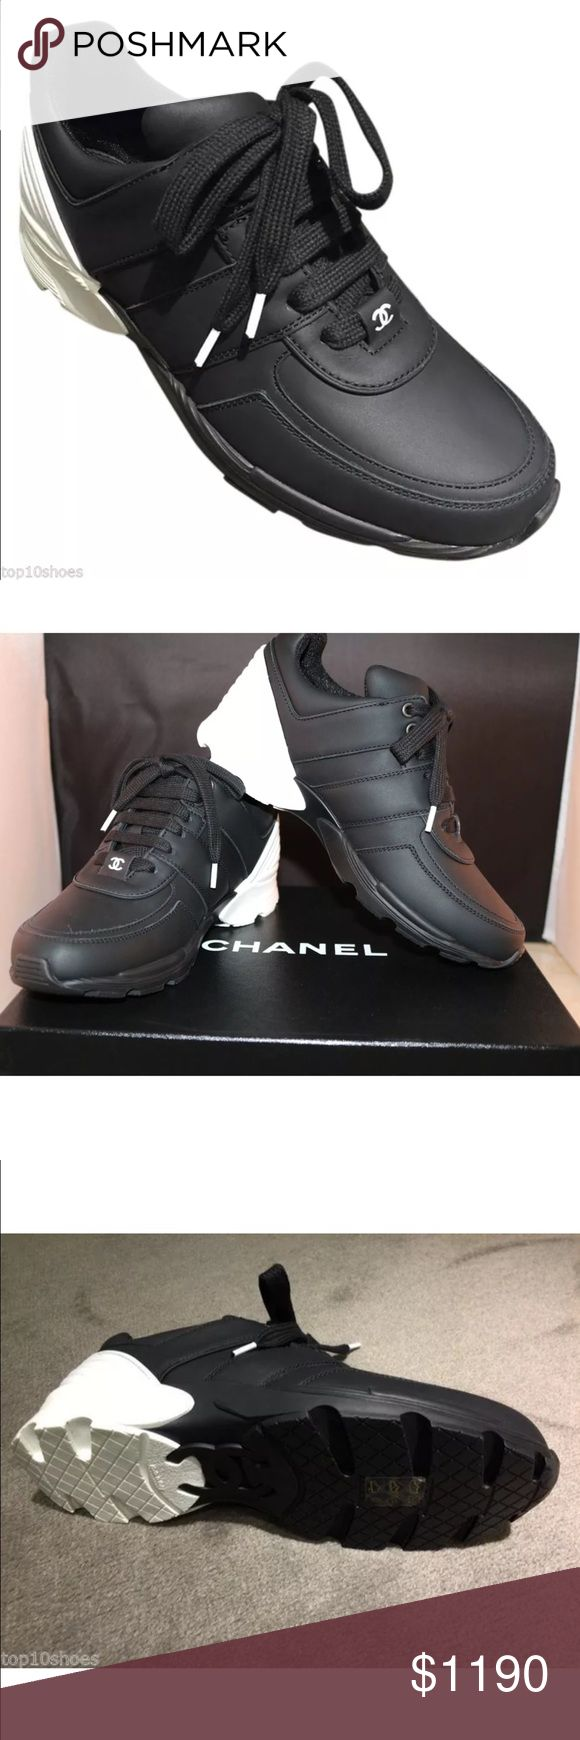 CHANEL LOGO BLACK WHITE LEATHER SNEAKERS TENNIS 37 Chanel Made in Italy  CC logo on top Come in original box with dust bag Material: Leather / Mesh  Color: black and white  Run true to size  New 2016 Collection Sneakers CHANEL Shoes Athletic Shoes